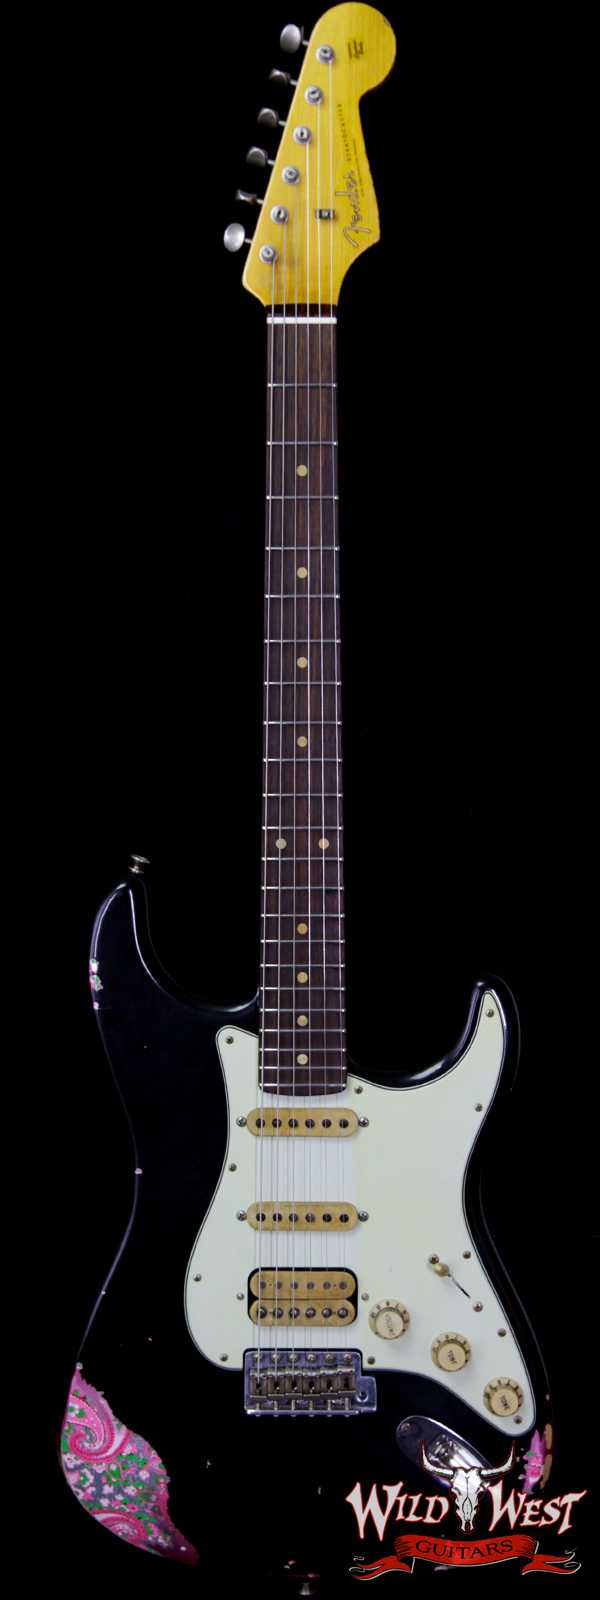 Fender Custom Shop Black Lightning 2.0 Stratocaster Heavy Relic HSS 22 Frets Rosewood Board Pink Paisley